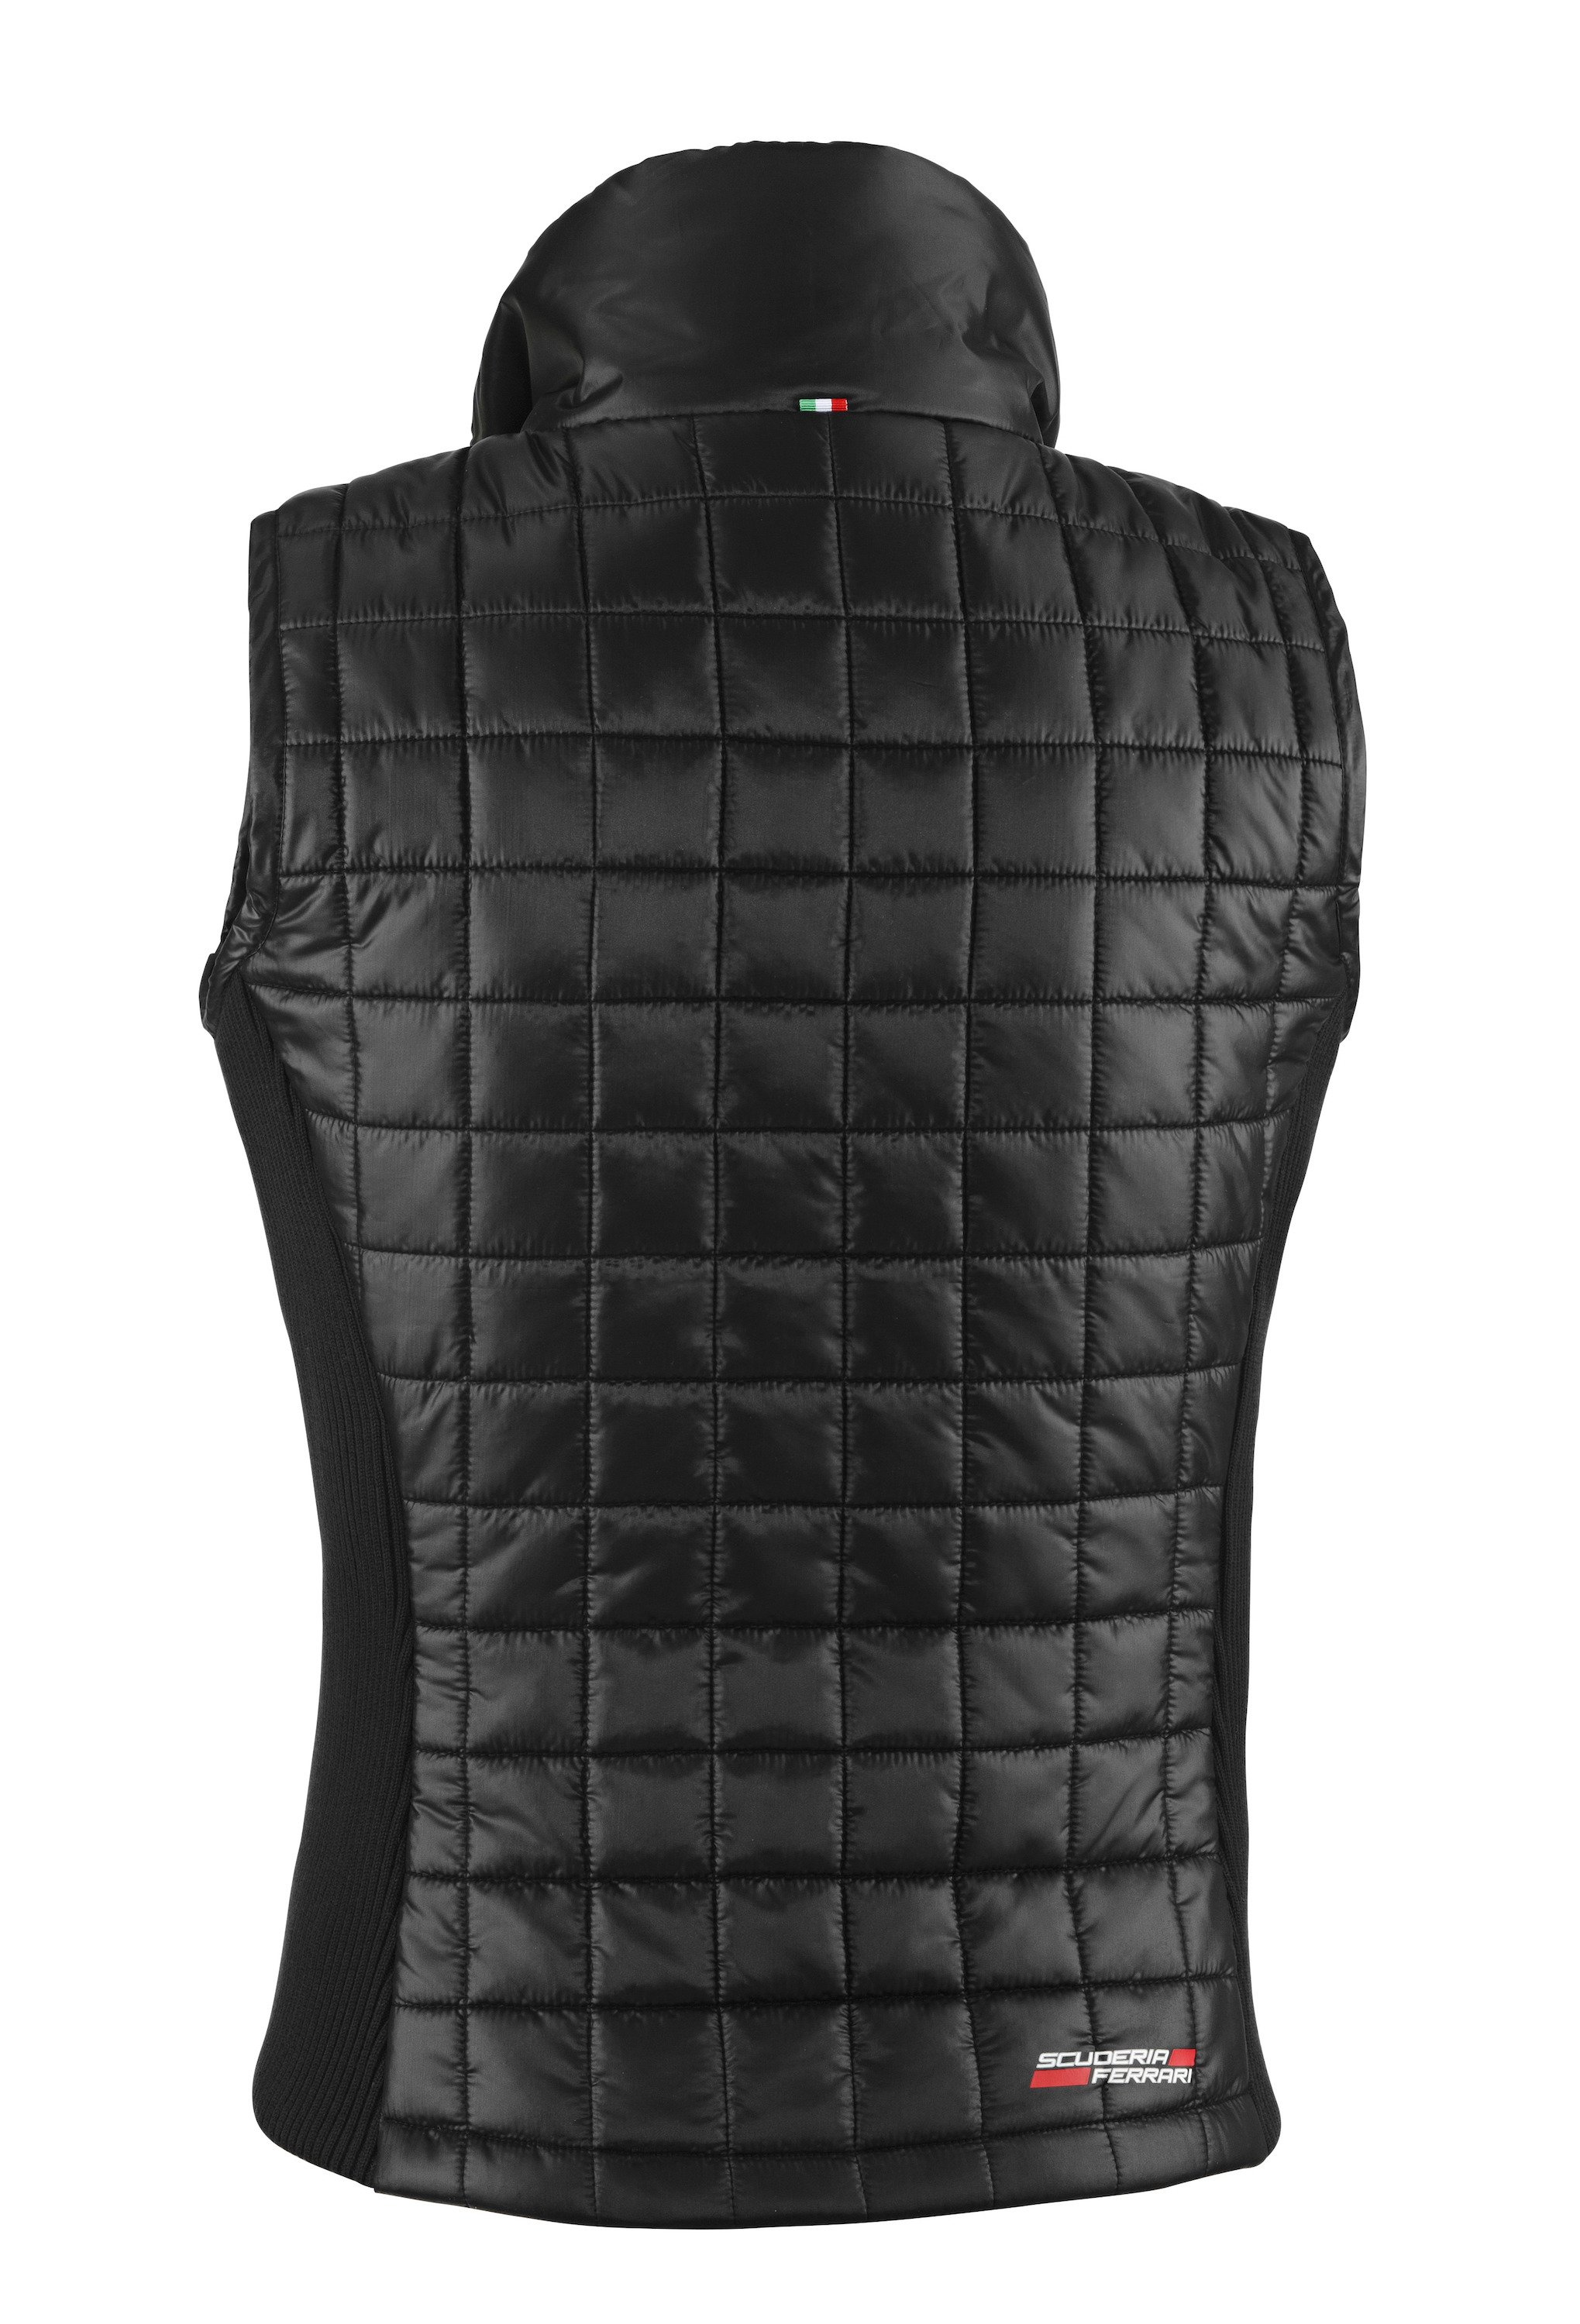 Shop the latest vest for women at Macy's. Check out our wide selection of women's vest including puffer vest, down vest, quilted vest from top brands and more!